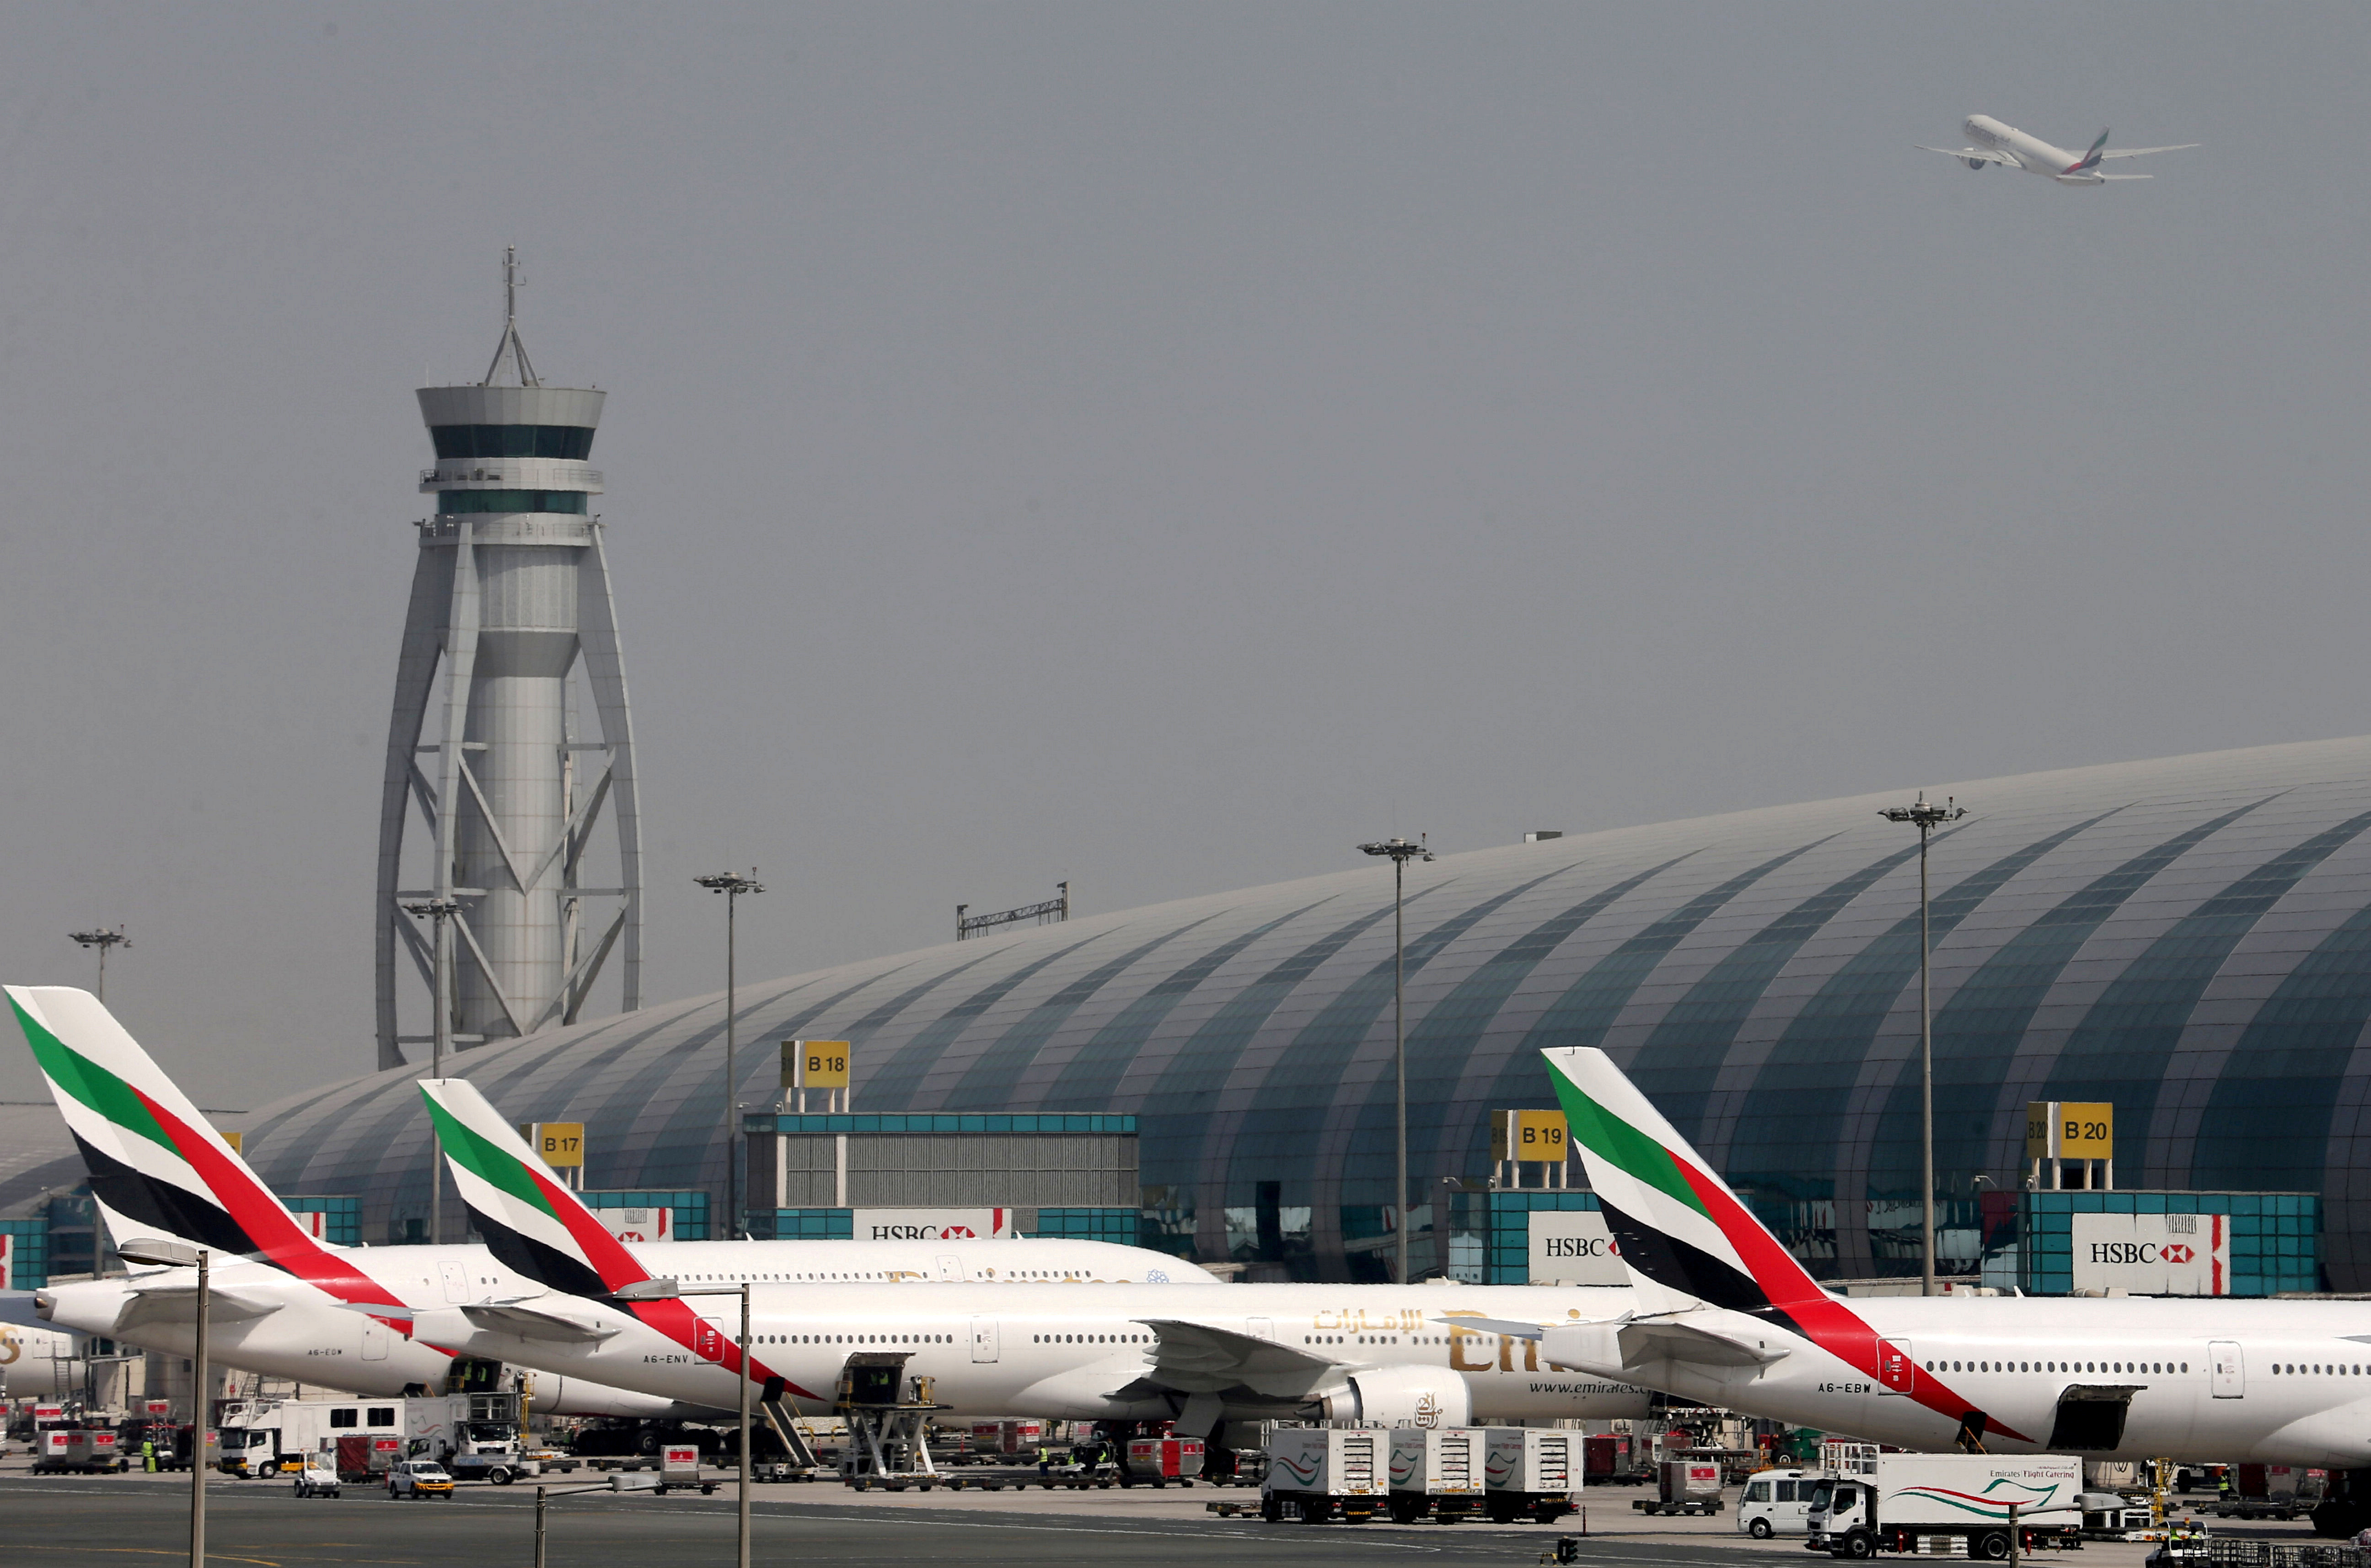 Emirates Airlines aircrafts are seen at Dubai International Airport, United Arab Emirates May 10, 2016. REUTERS/Ashraf Mohammad